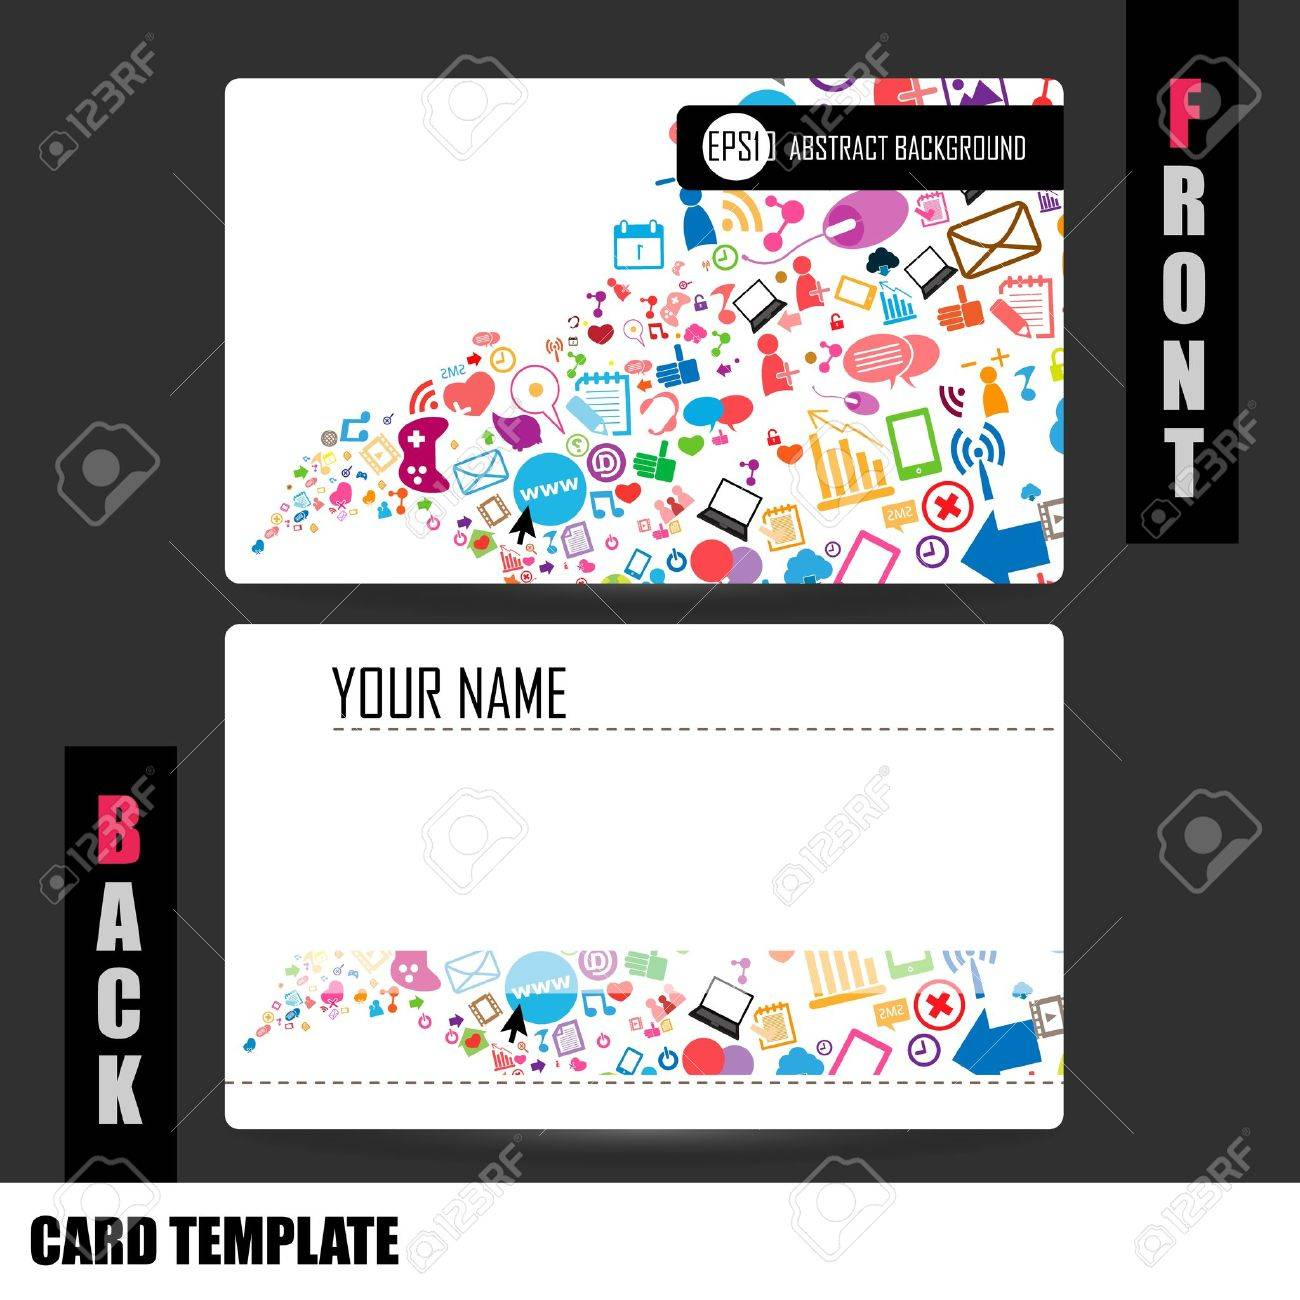 modern social network business card set royalty cliparts modern social network business card set stock vector 20946578